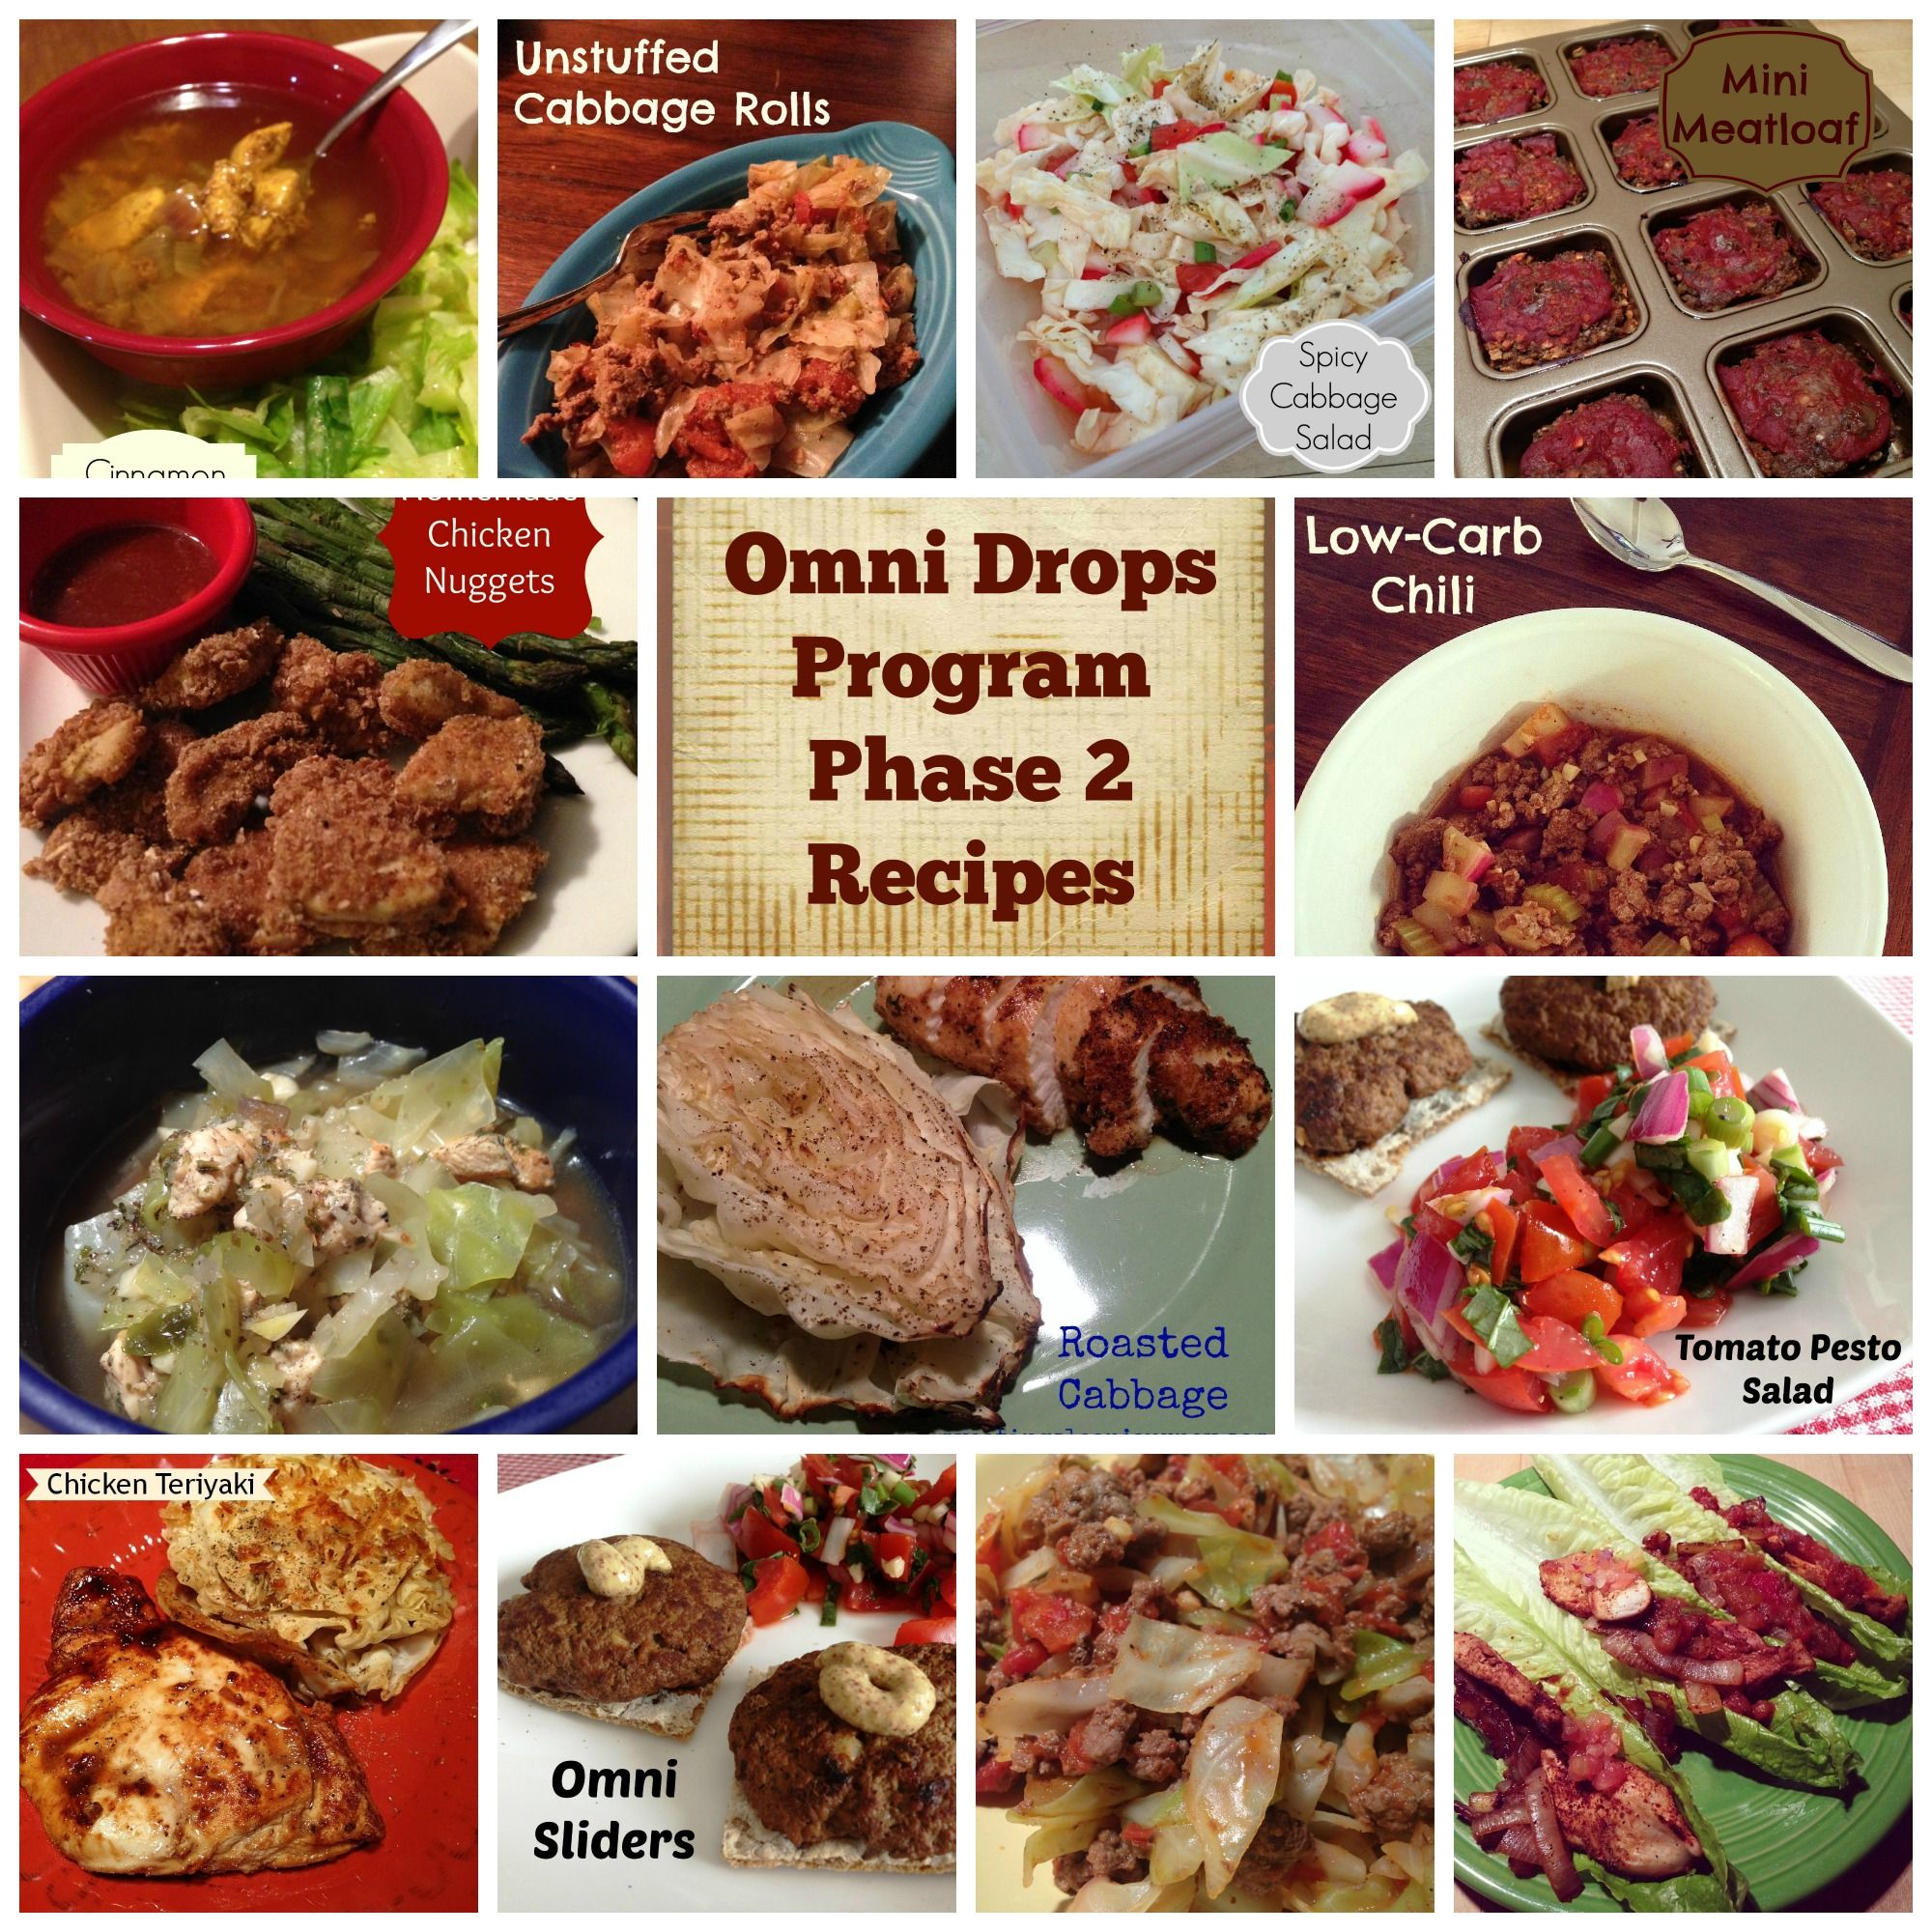 Omni Drops Program Phase 2 Recipes: My eating clean